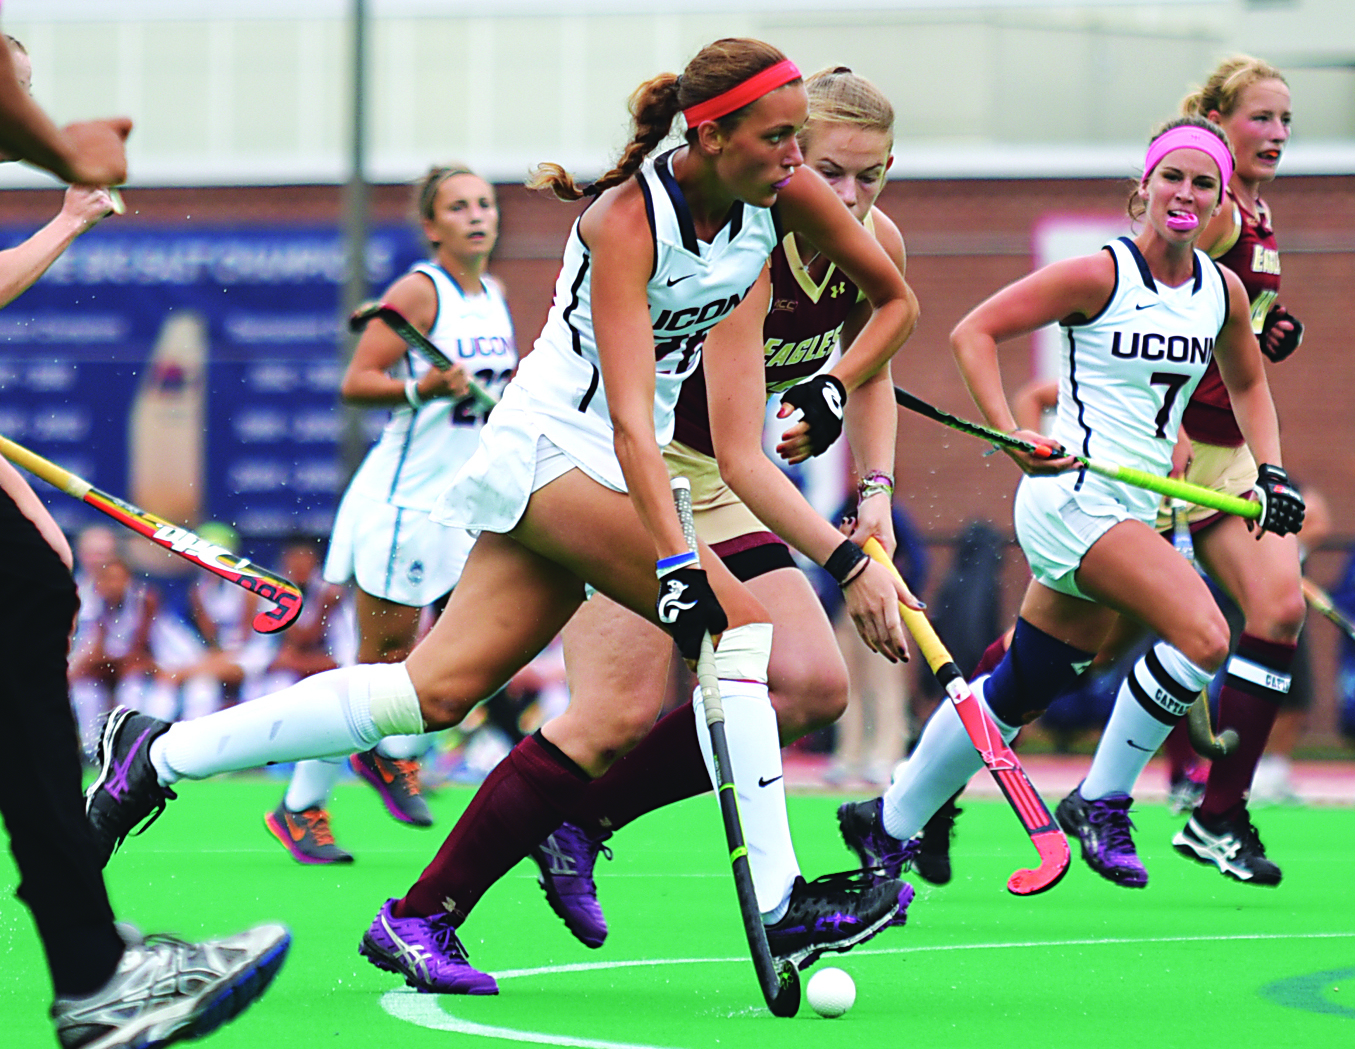 UConn sophomore forward Charlotte Veitner runs downfield during the Huskies' game against Boston College on Sunday, Sept. 13, 2015 at the Sherman Family Sports Complex in Storrs, Connecticut. (Allen Lang/The Daily Campus)